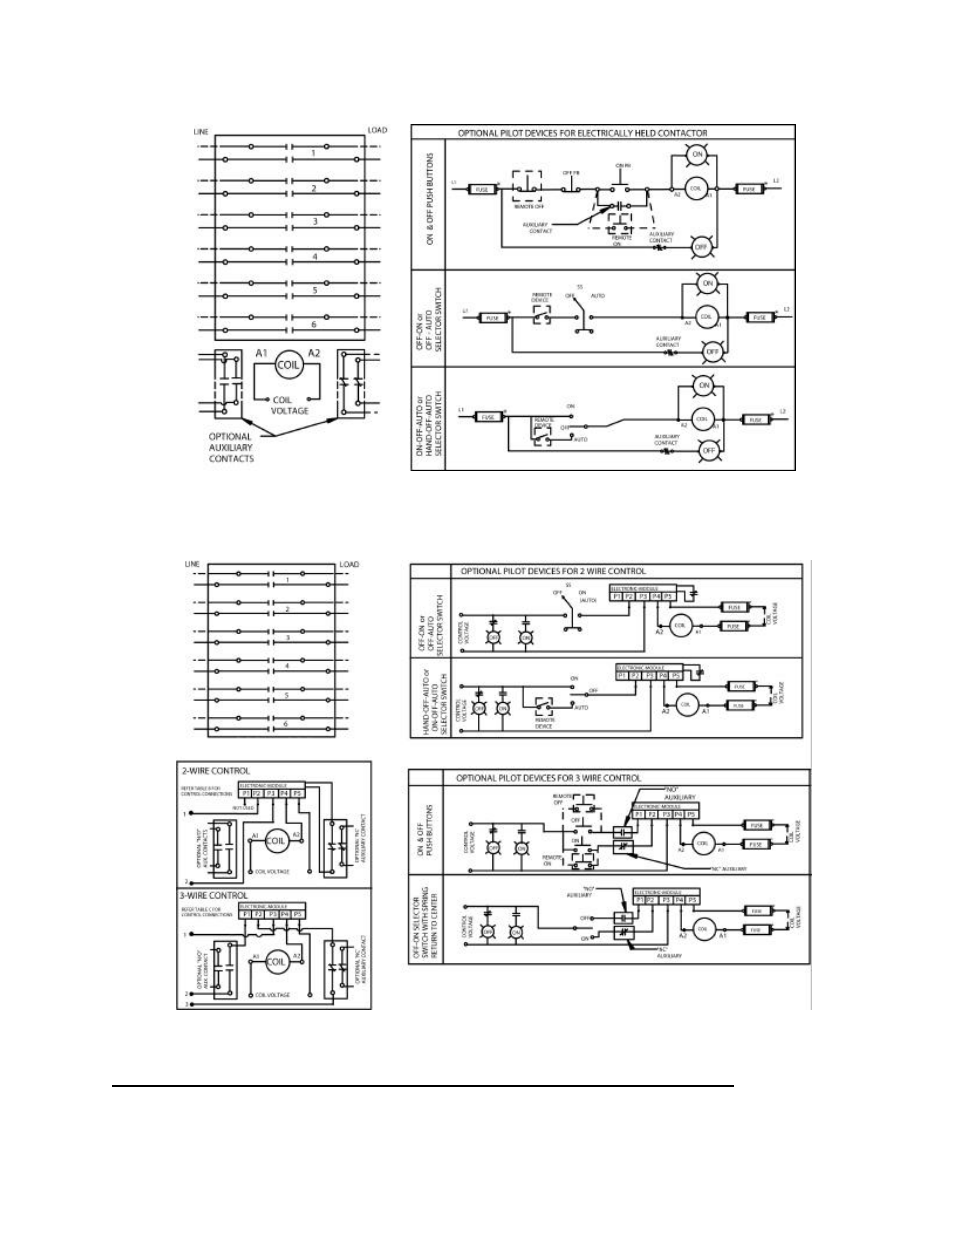 ge industrial solutions cr460 lighting contactor series page4 ge industrial solutions cr460 lighting contactor series user ge lighting contactor cr460 wiring diagram at n-0.co